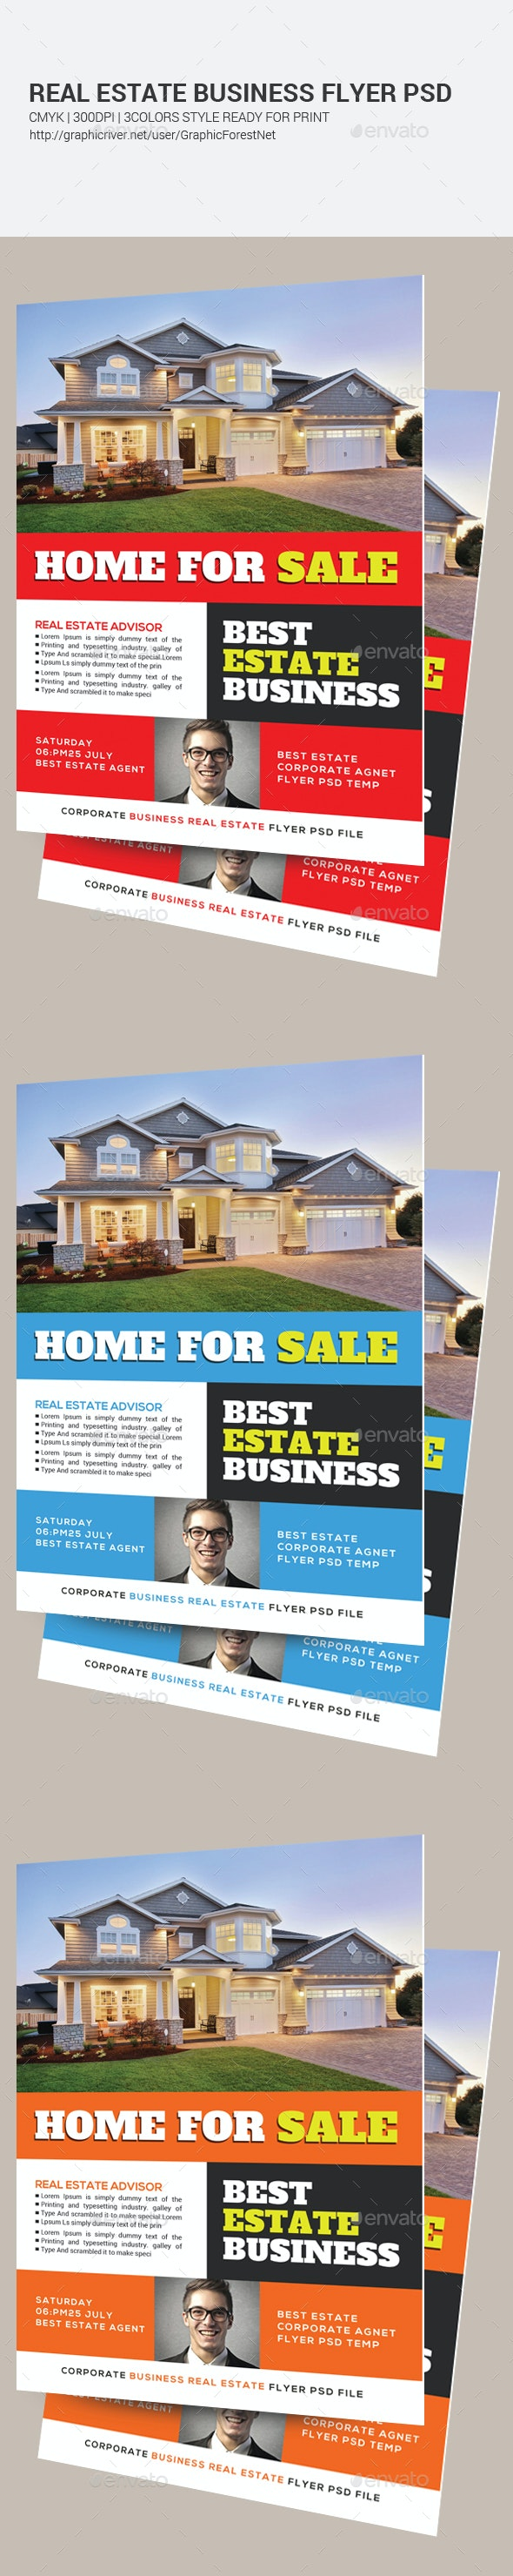 Home Real Estate Flyer Psd - Corporate Flyers